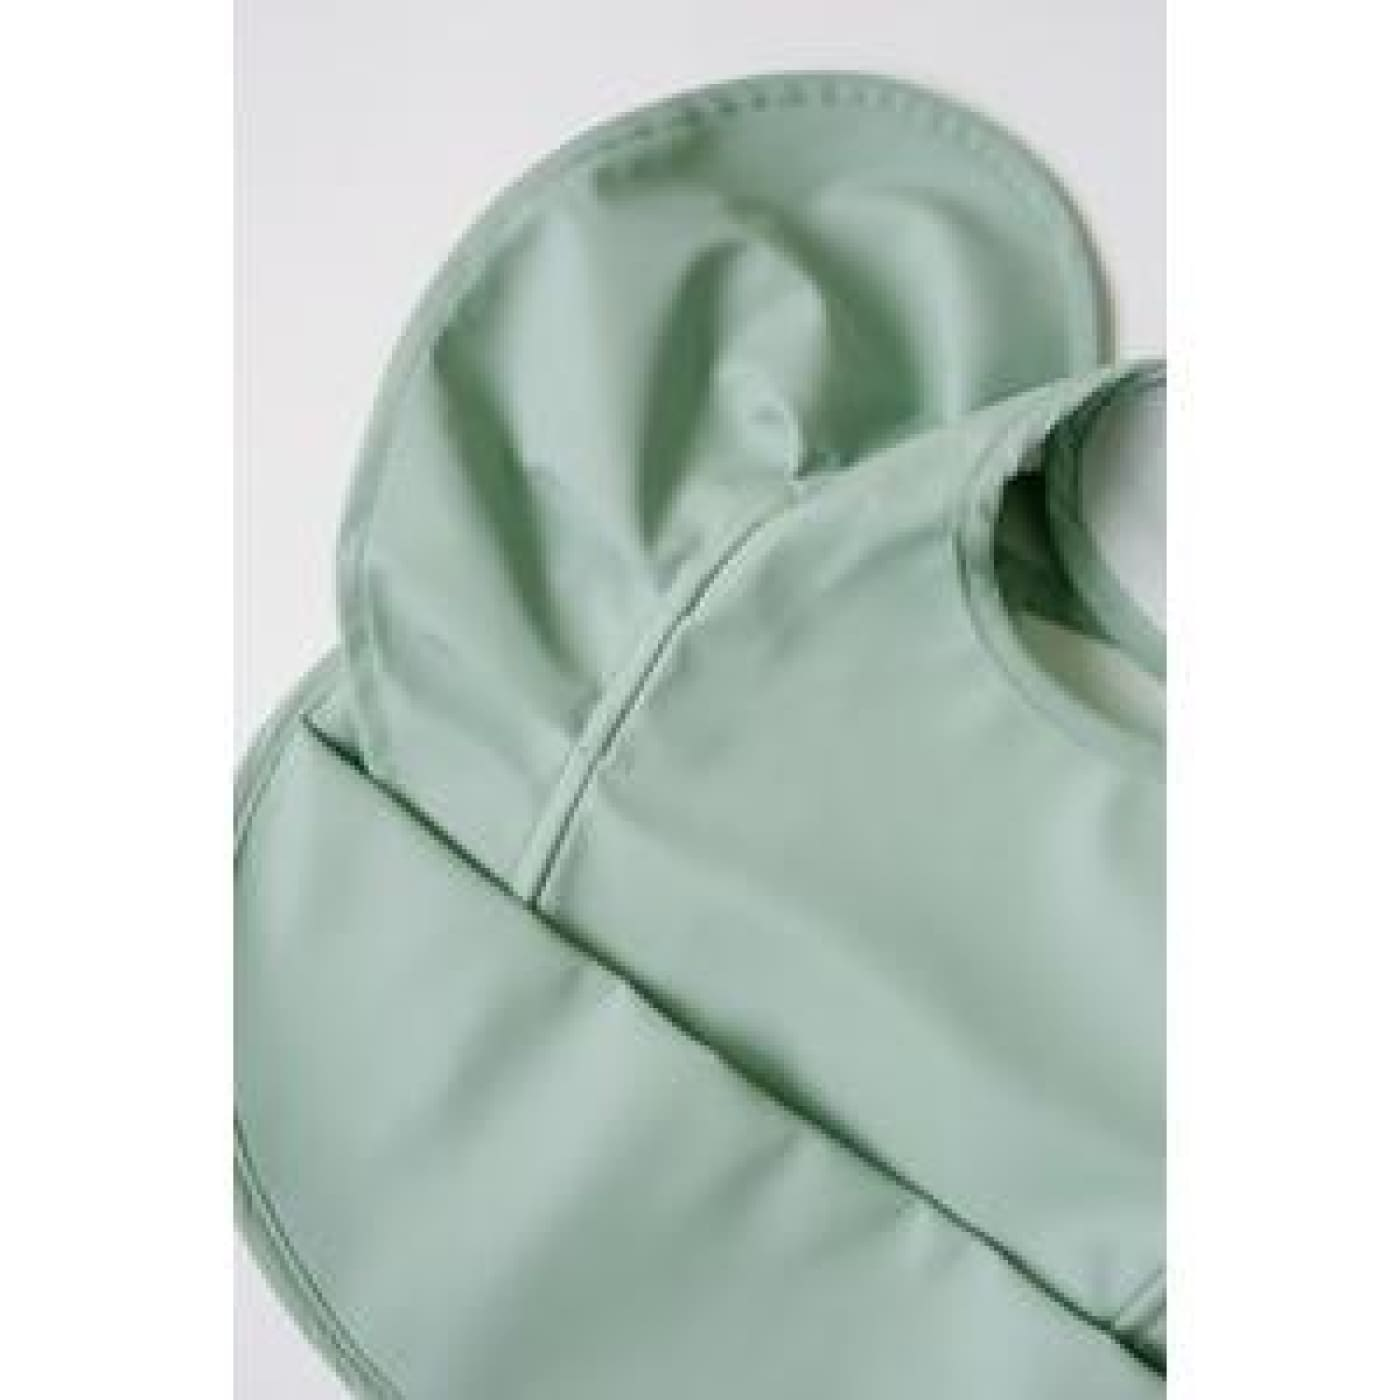 Snuggle Hunny Kids Snuggle Waterproof Bib - Sage Frill - Sage Frill - NURSING & FEEDING - BIBS/BURP CLOTHS